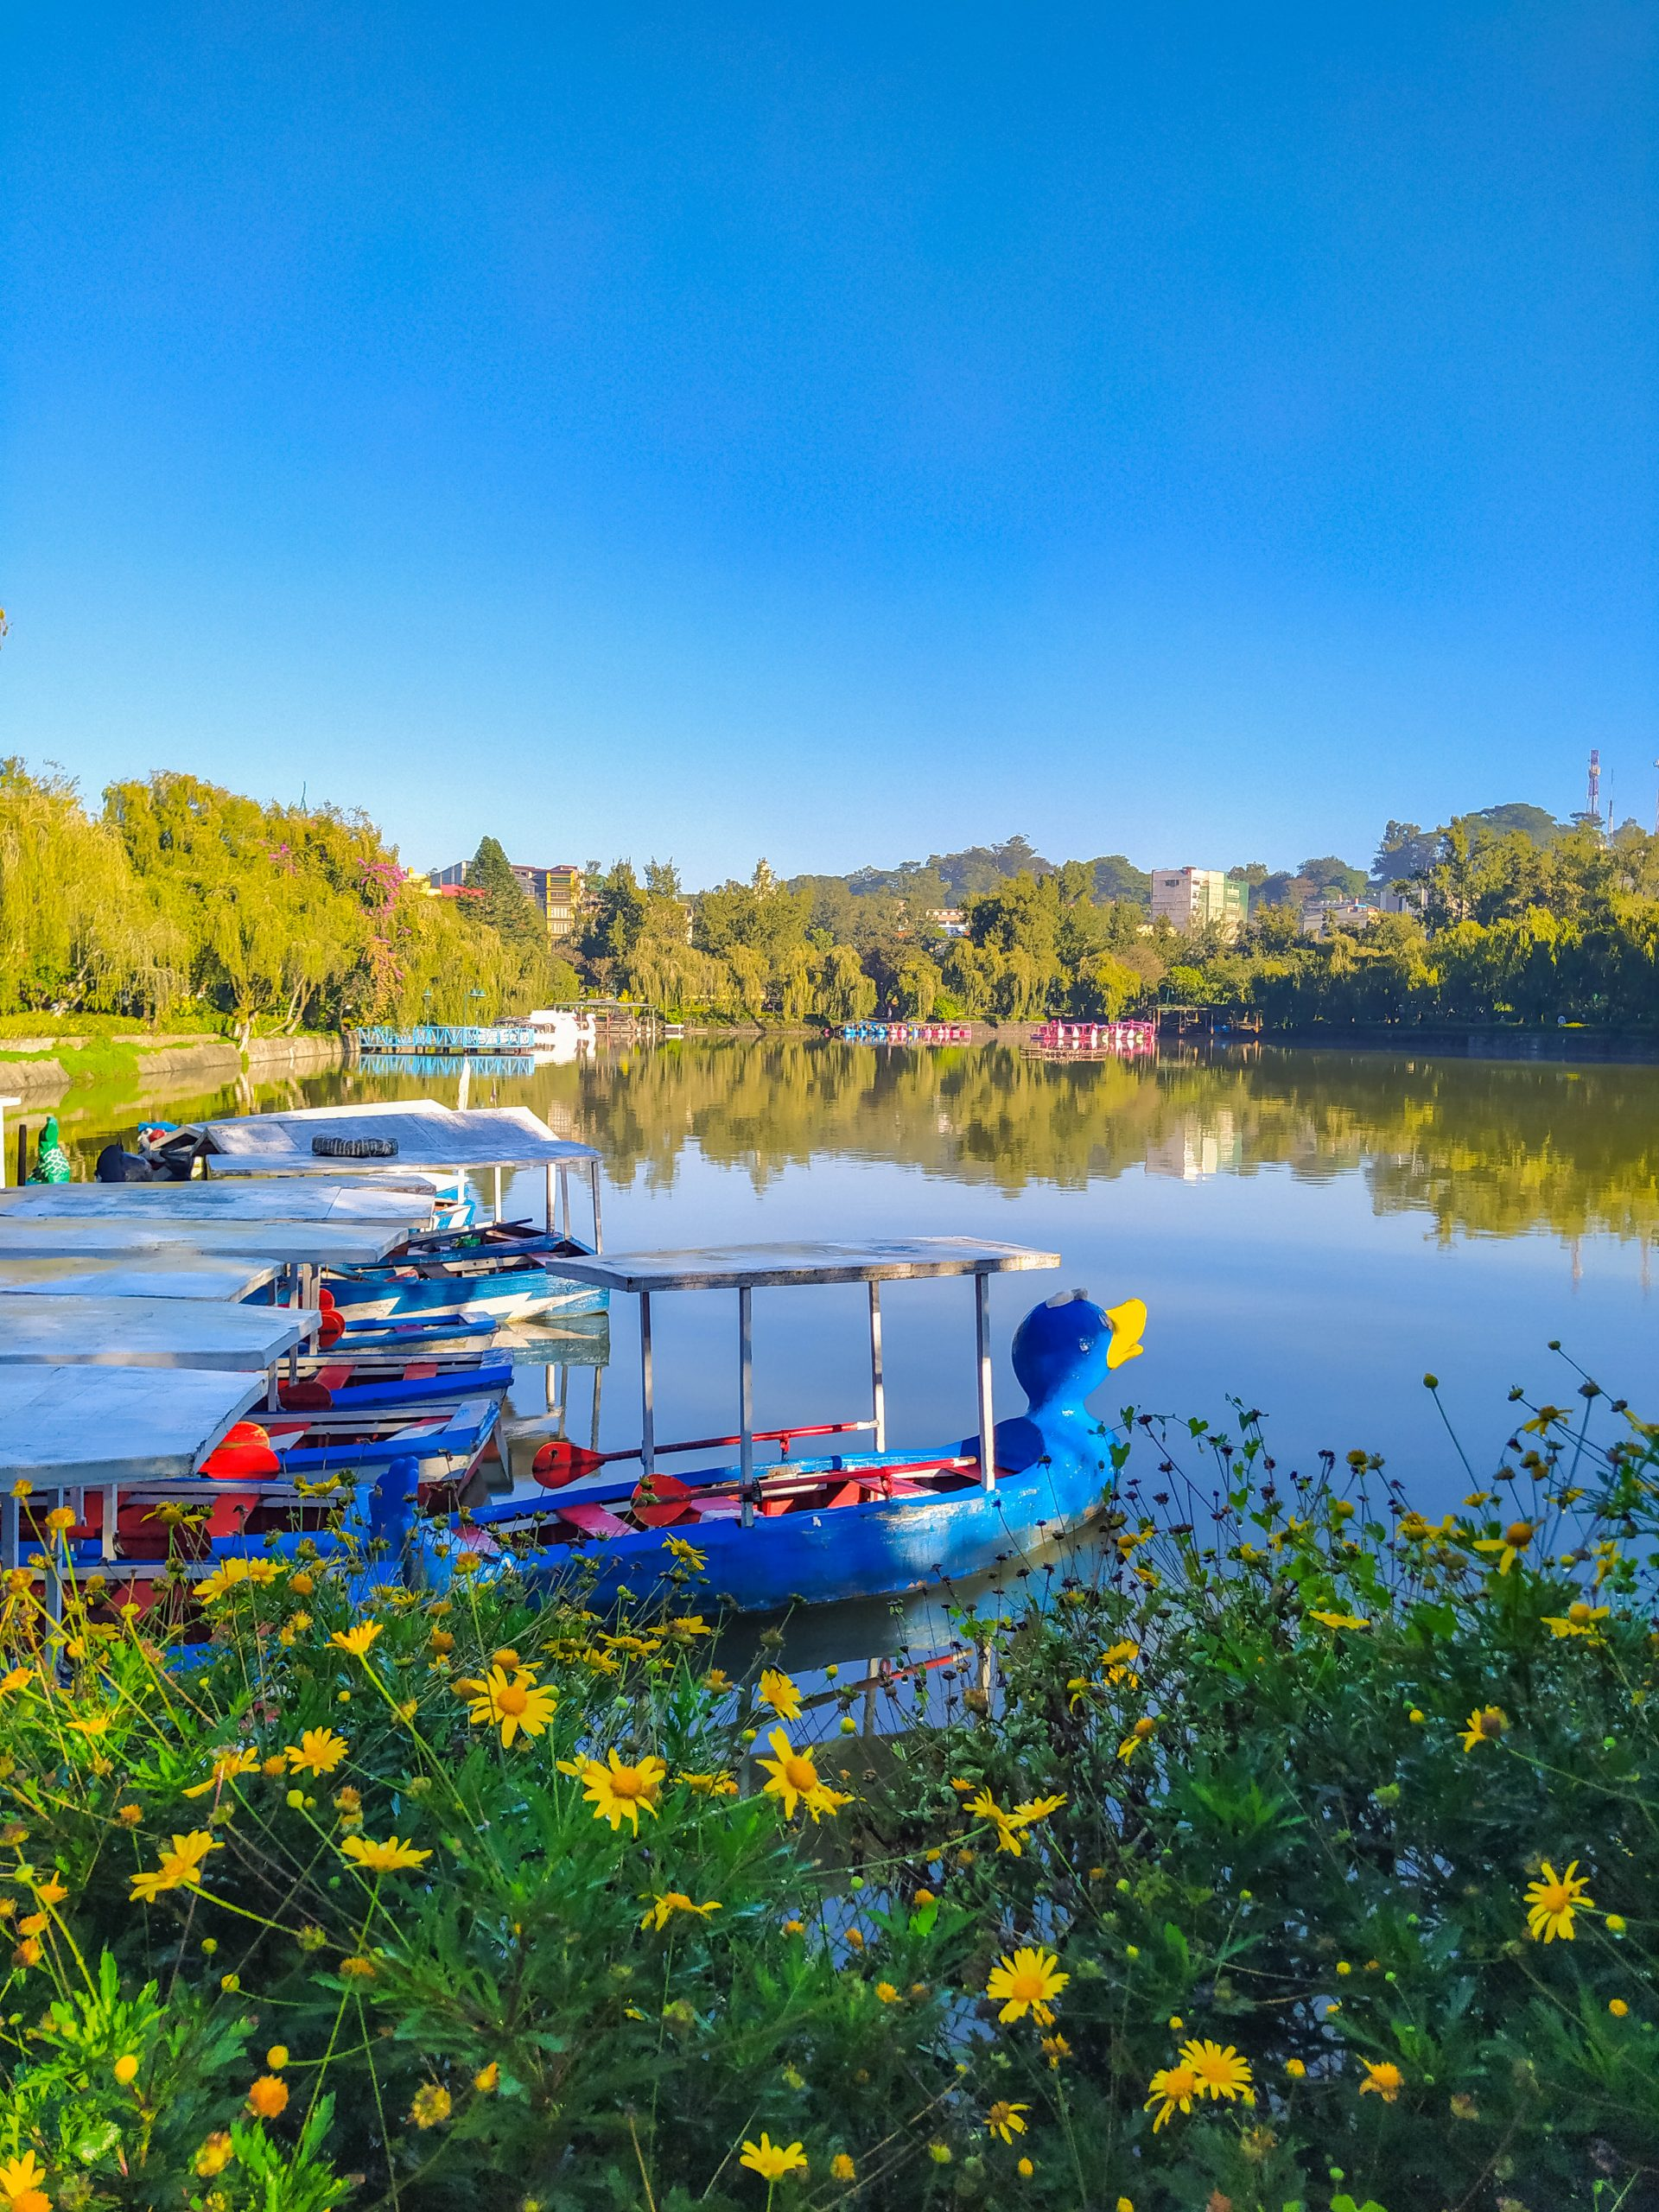 Boats floating on the clear, calm, and mirror-like surface of Burnham Lake underneath the clear, blue morning sky